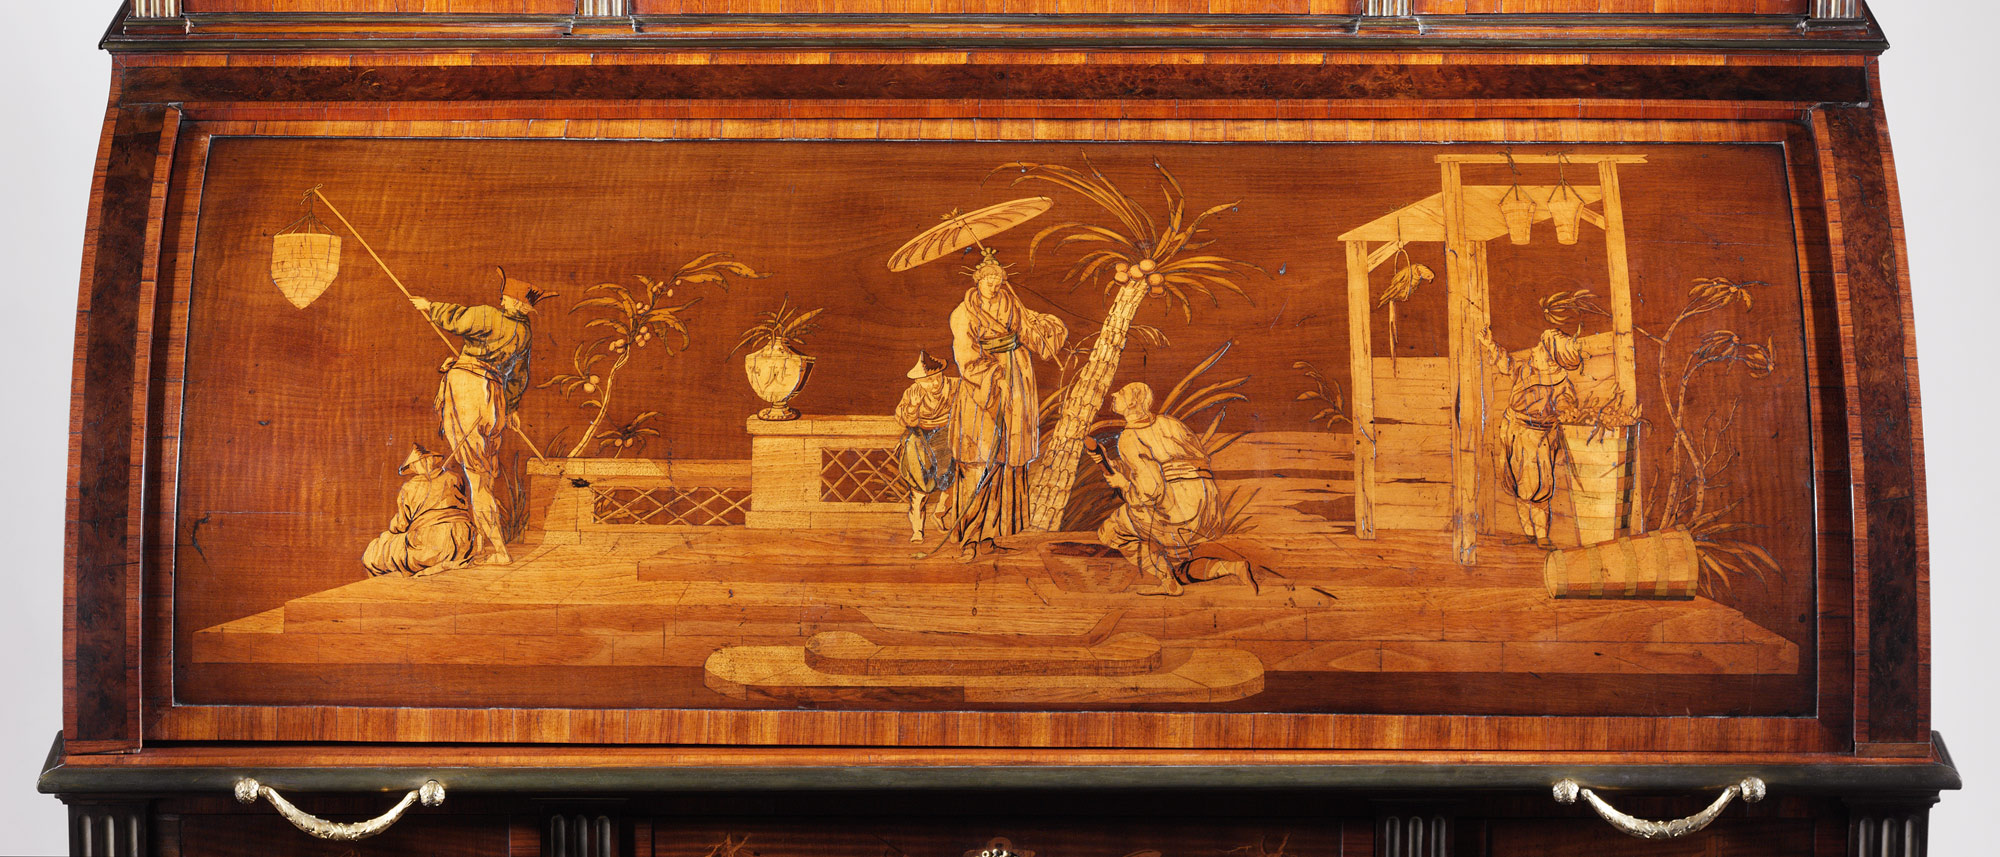 A detail of a marquetry panel on a Roentgen cylinder desk in the collection of the Metropolitan Museum of Art. Marquetry by Johann Michael Rummer.